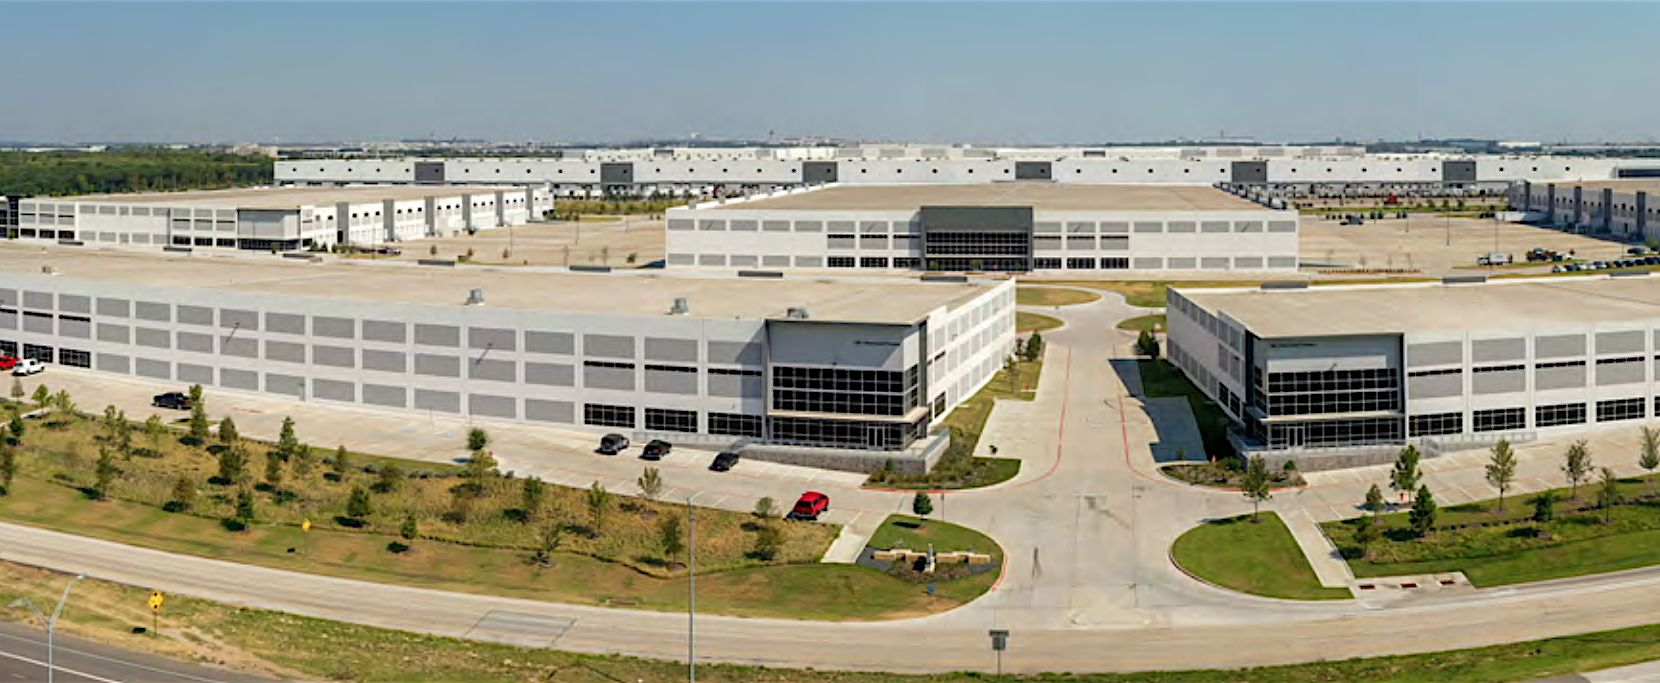 Tenants in the business park include Heritage Auctions, Samsung, Hello Fresh, Legendzways Distribution and Hussmann Corp.